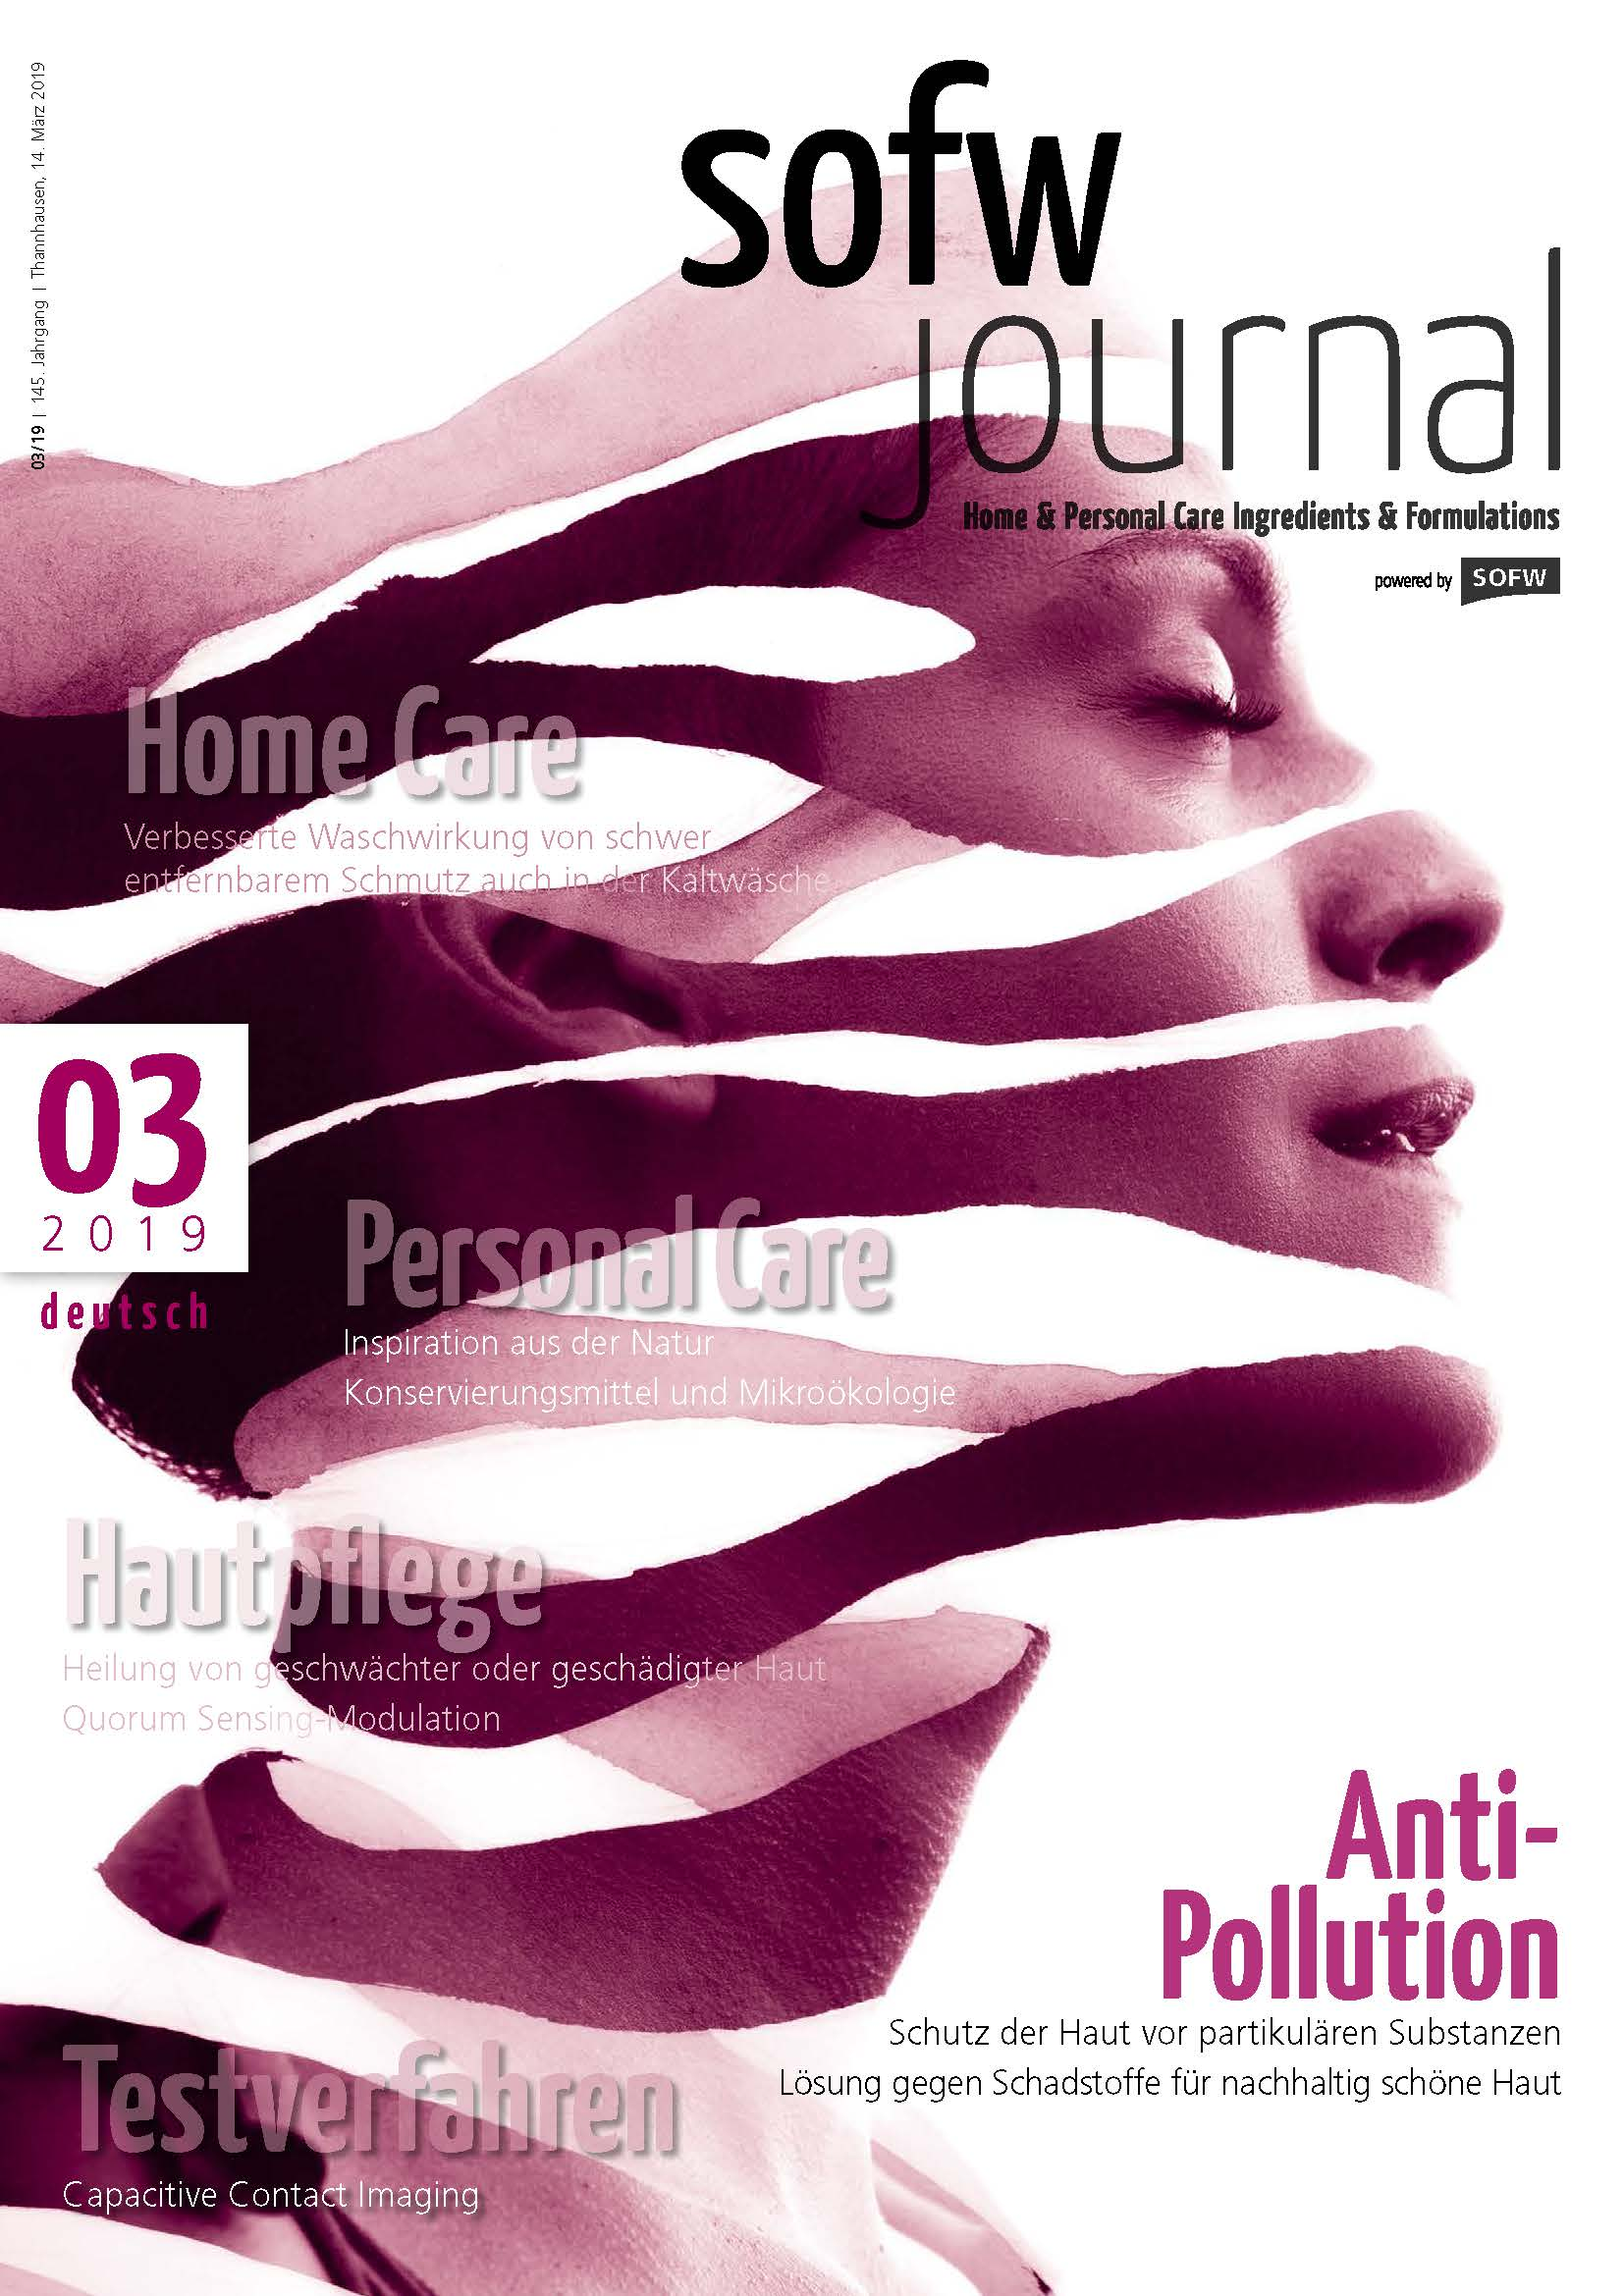 sofwjournal_de_2019_03_cover